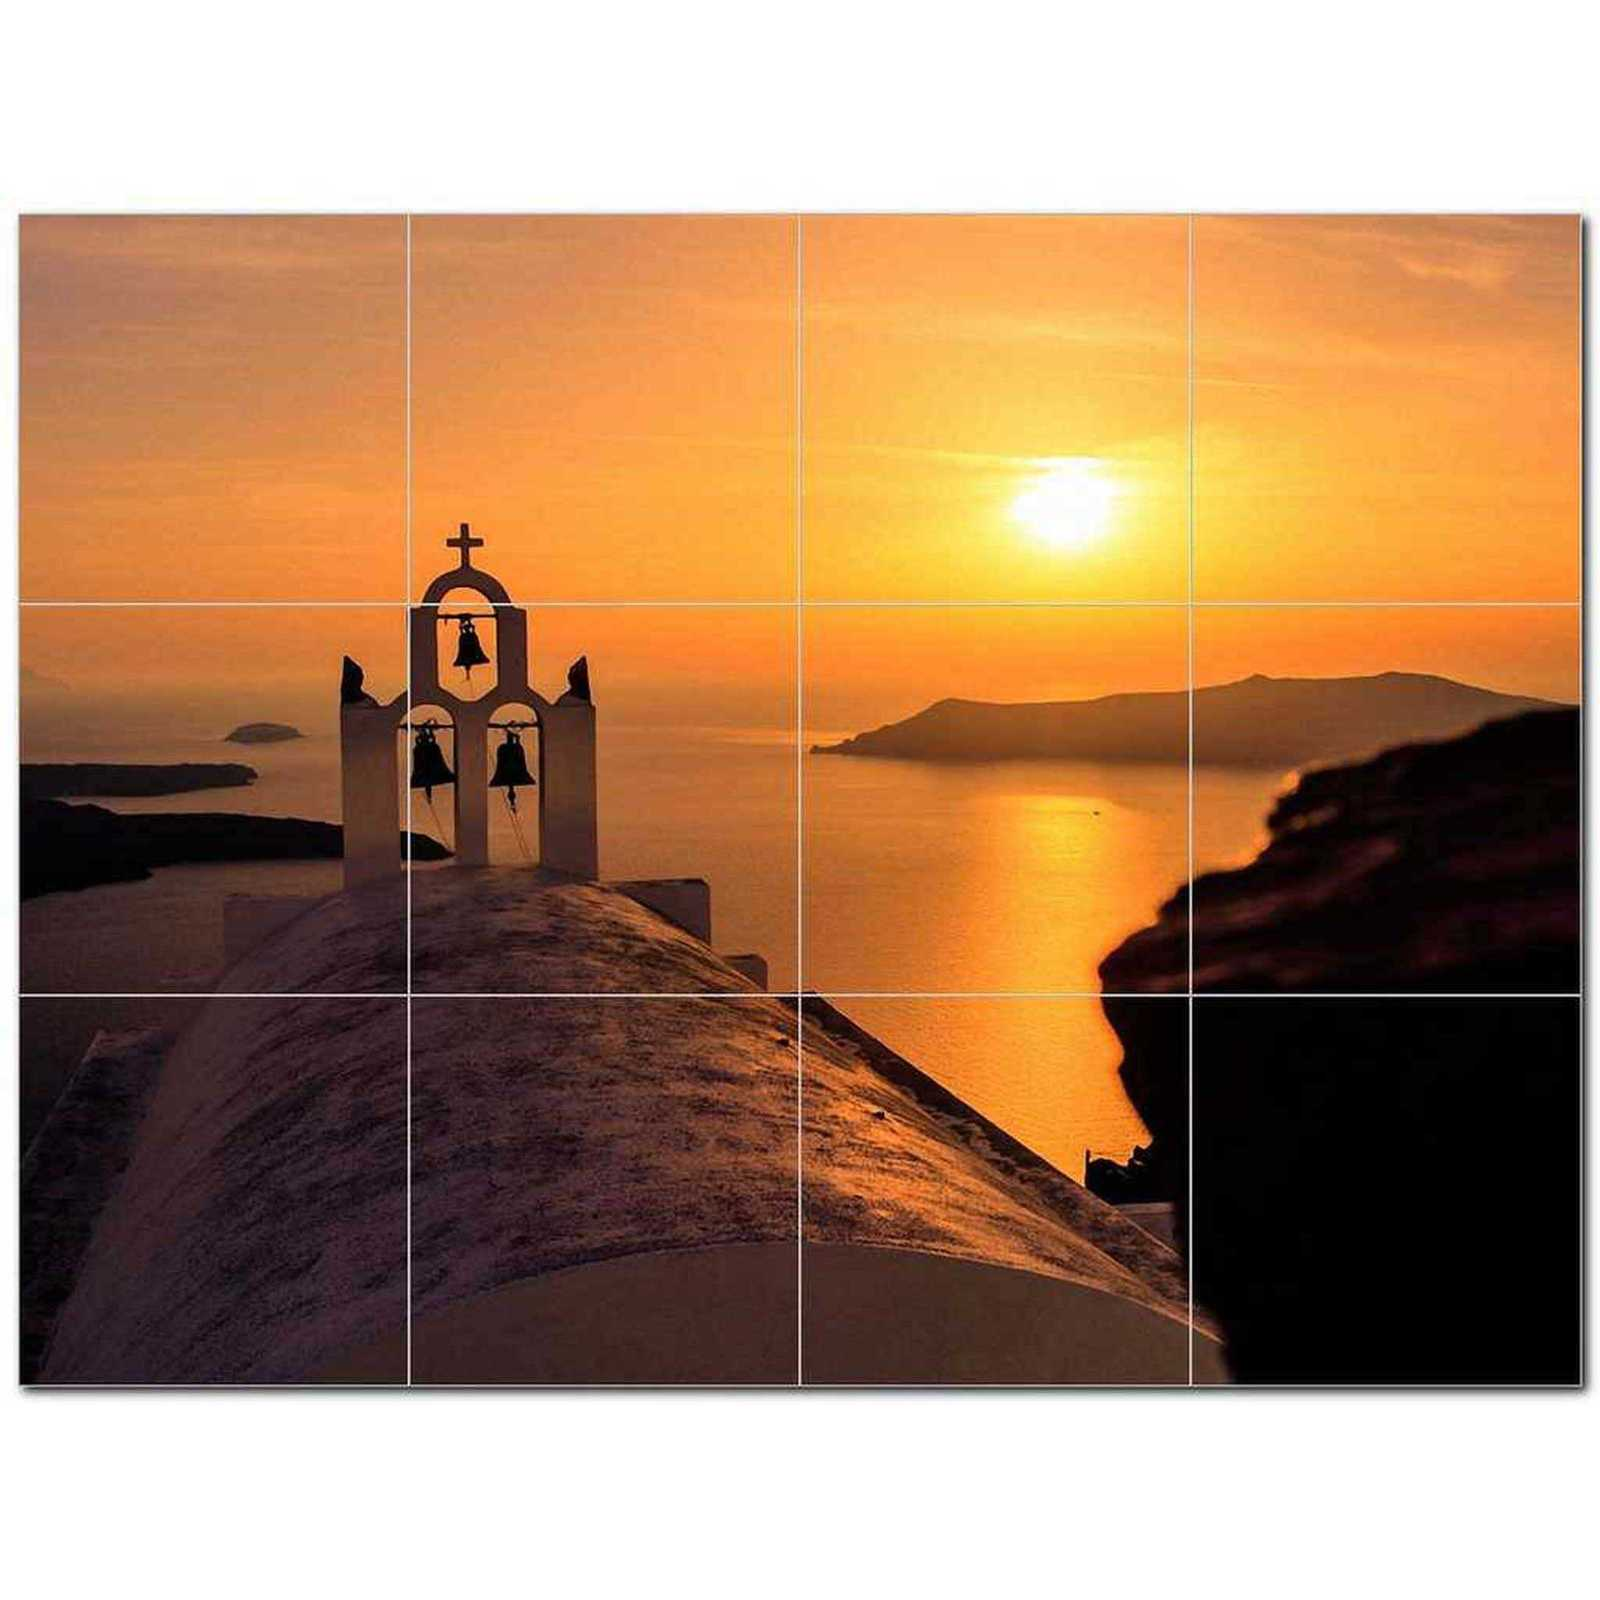 Primary image for Sunset Photo Ceramic Tile Mural Kitchen Backsplash Bathroom Shower BAZ405892